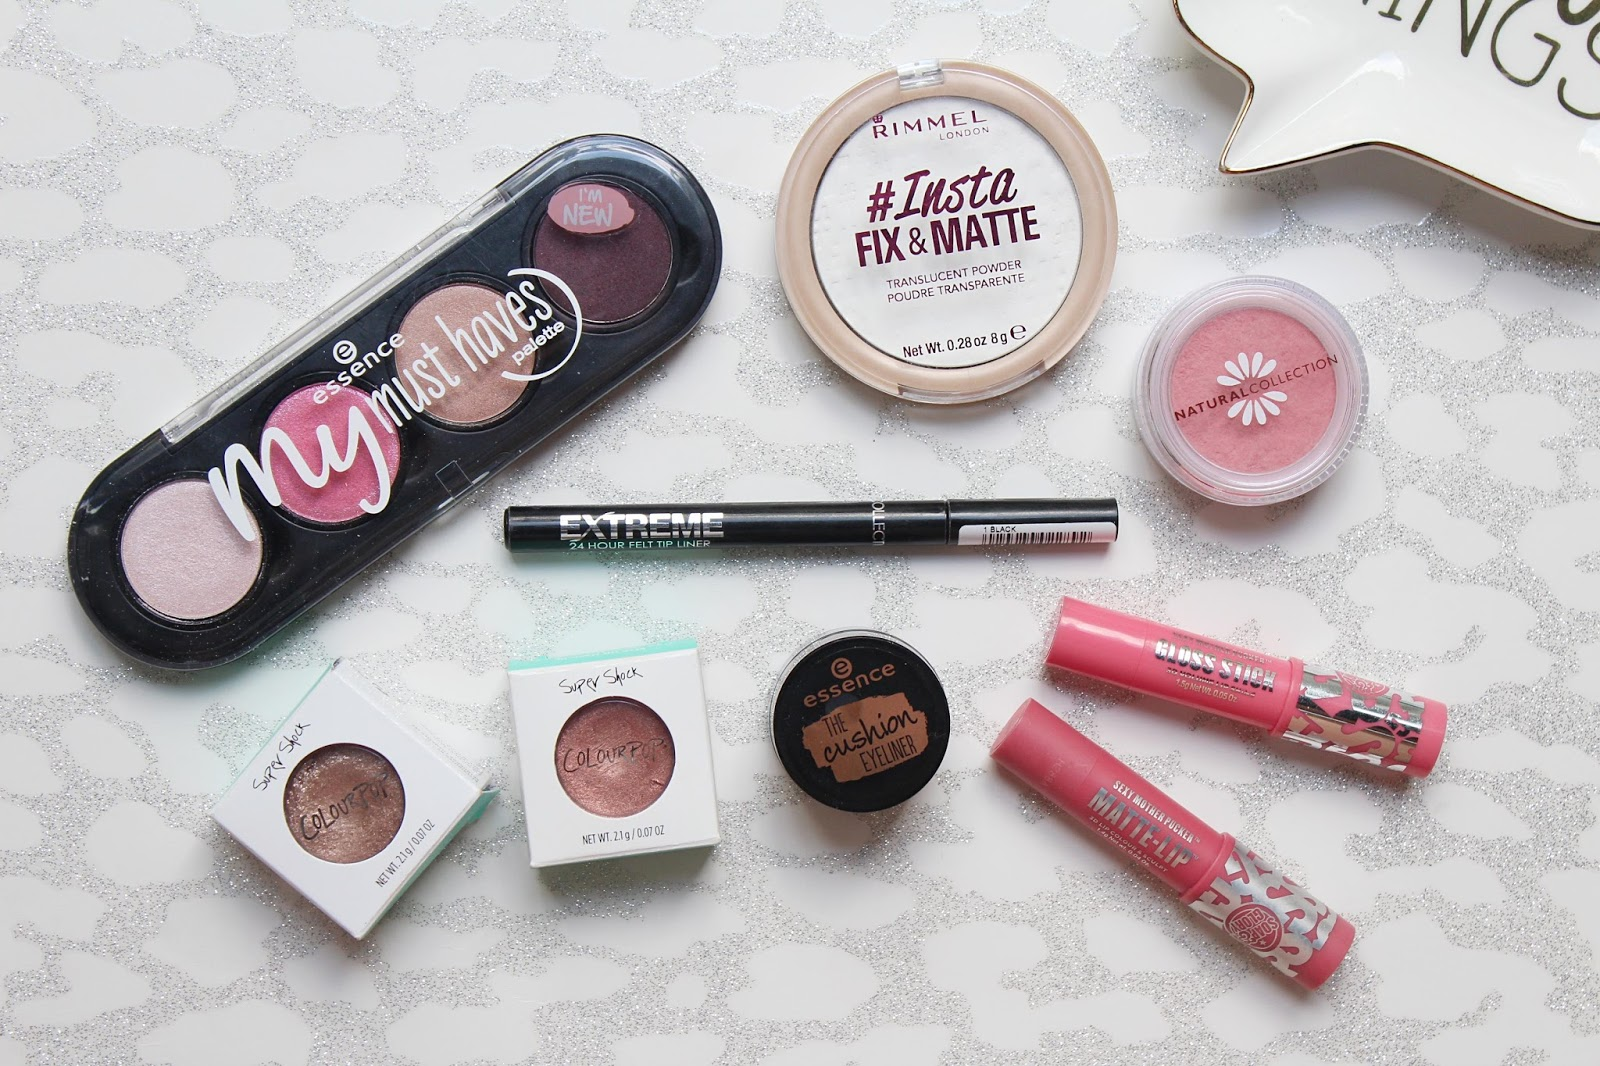 Favourite Products Under £5